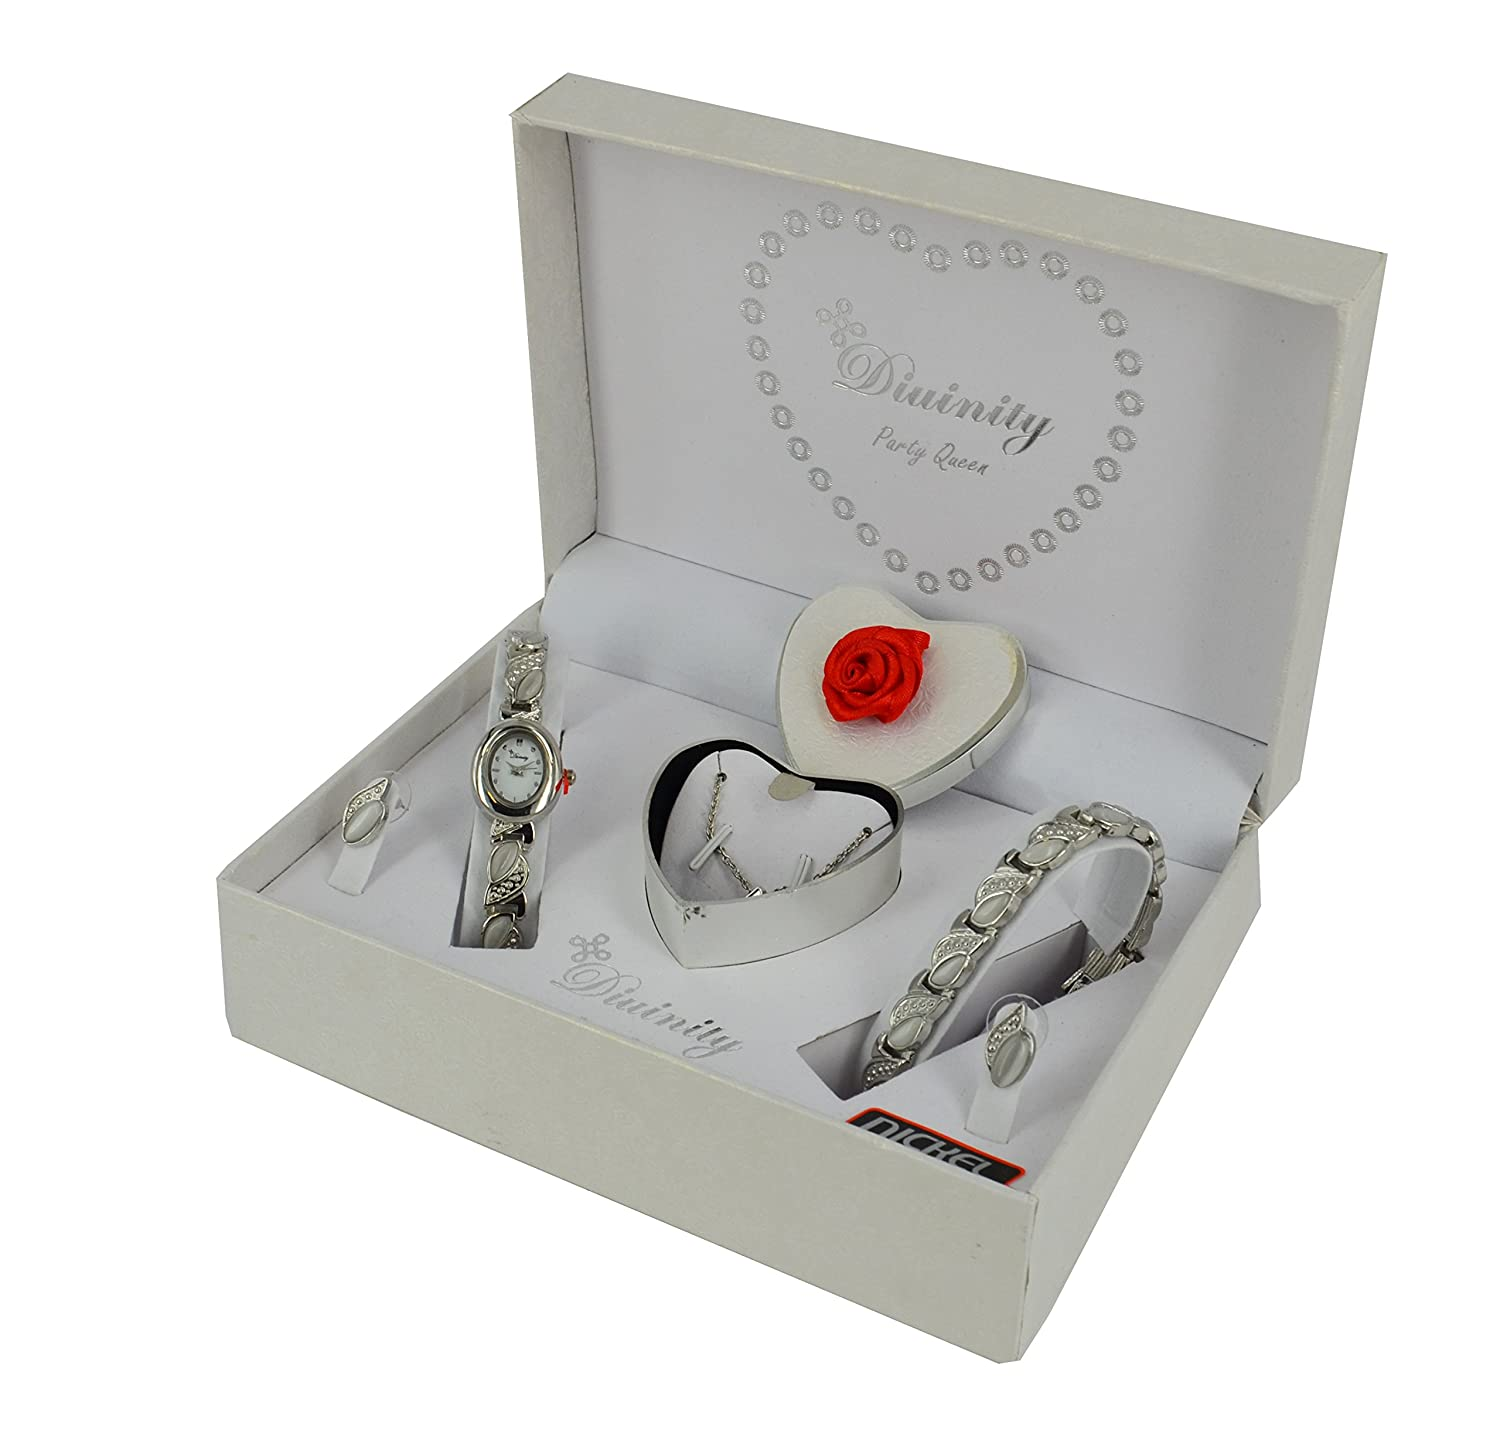 Ladies gift set watch bracelet earings necklace amazon ladies gift set watch bracelet earings necklace amazon watches negle Image collections